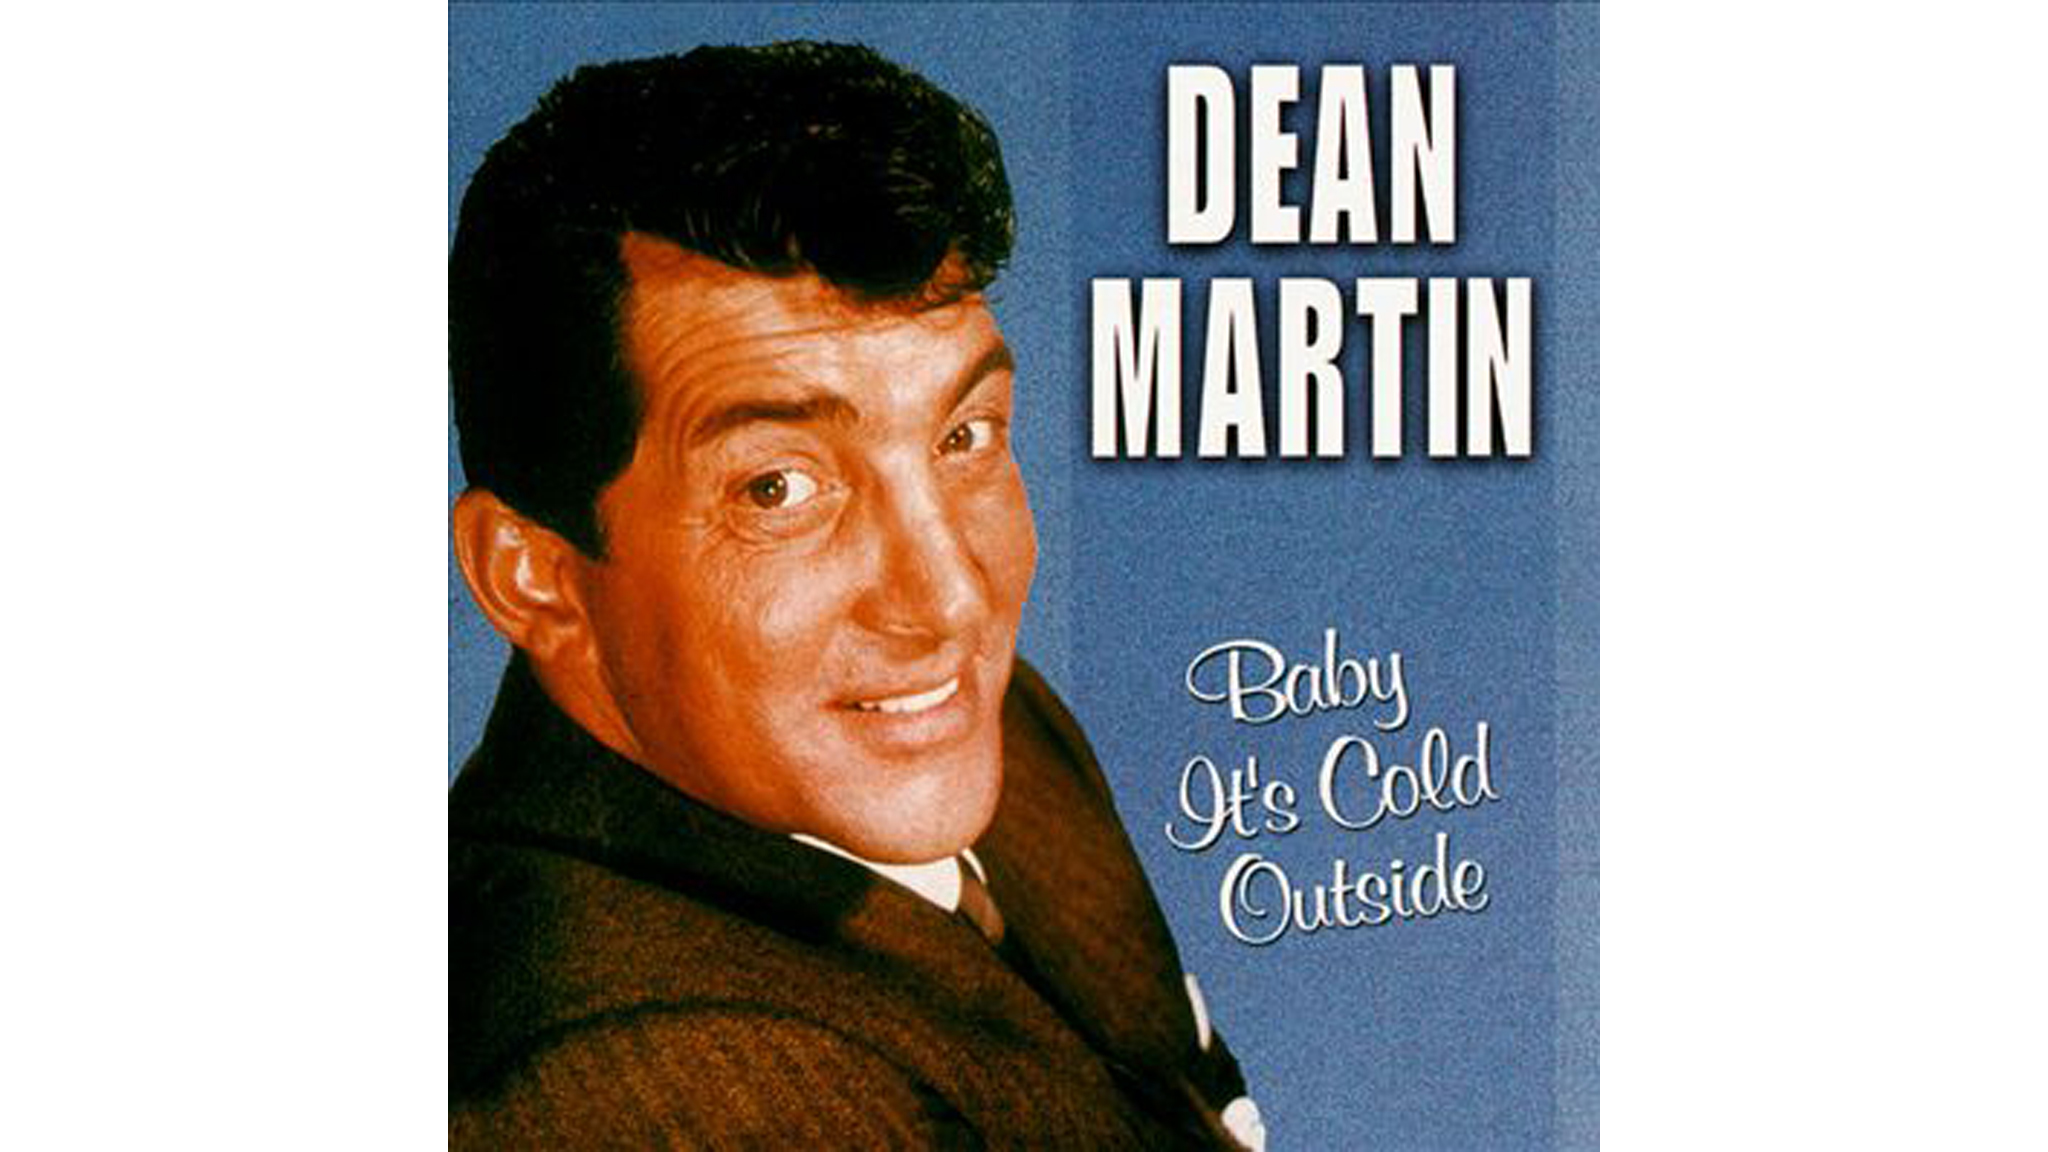 Dean Martin – 'Baby, It's Cold Outside' cover art